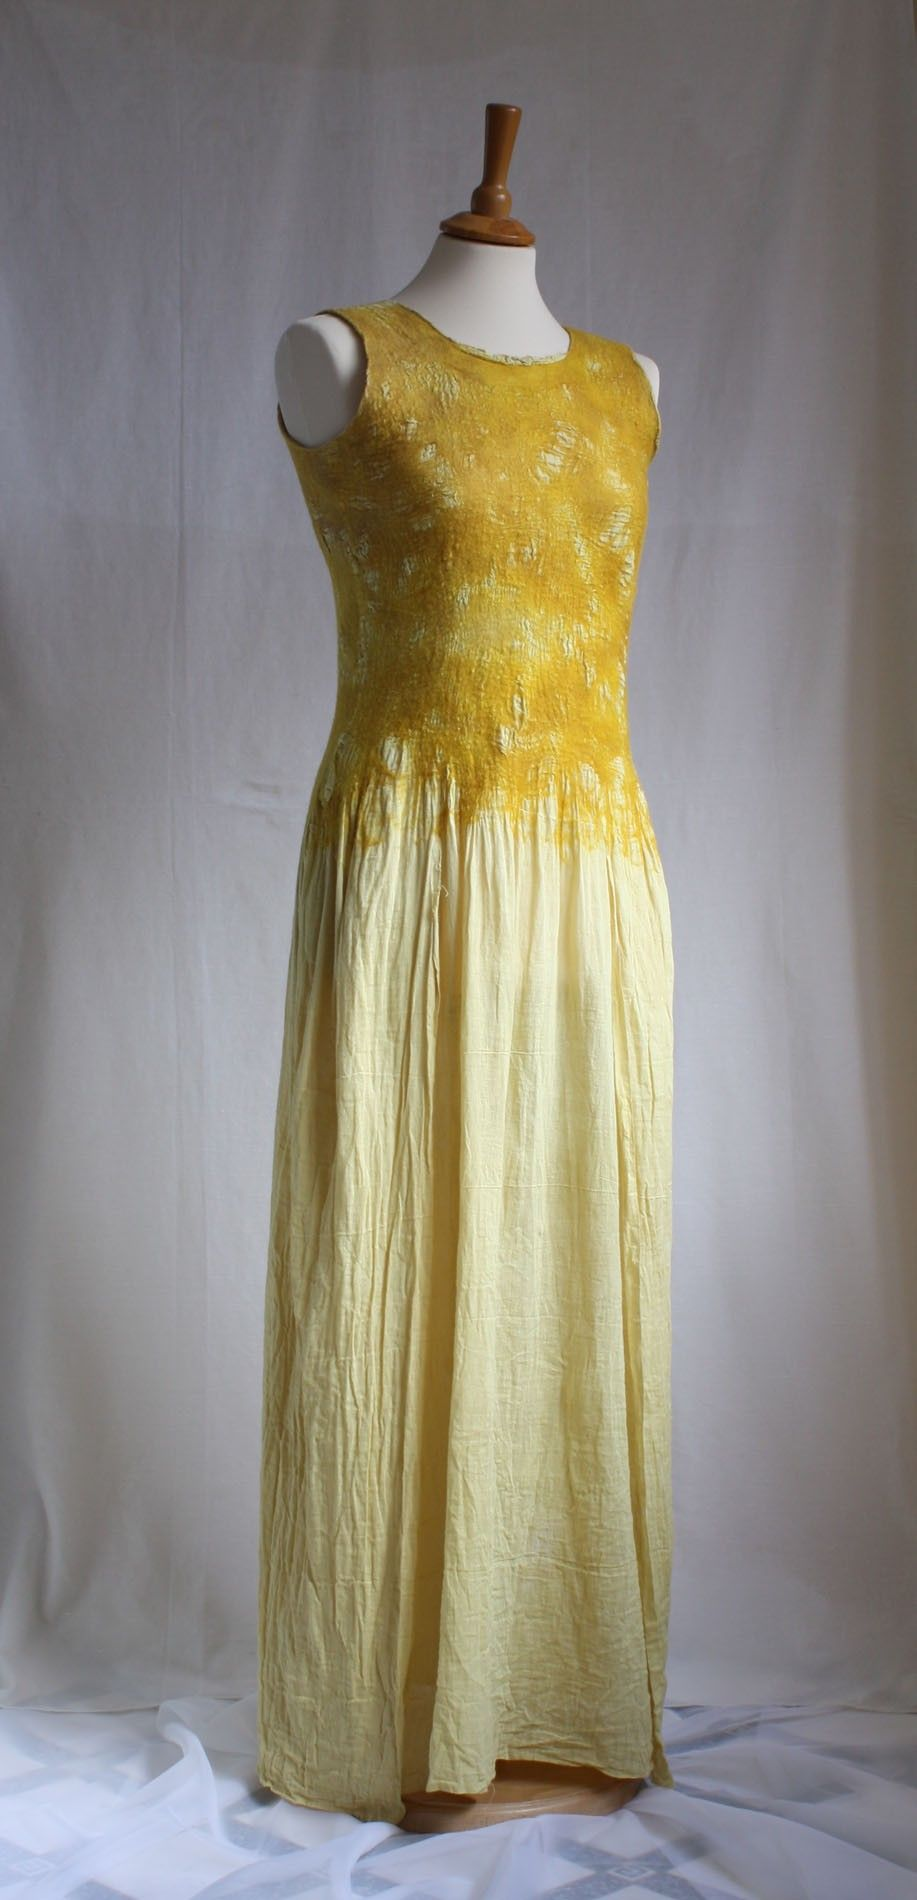 Hush. The Sun is Rising. Nunofelted Dress, OOAK. $242.00, via Etsy.